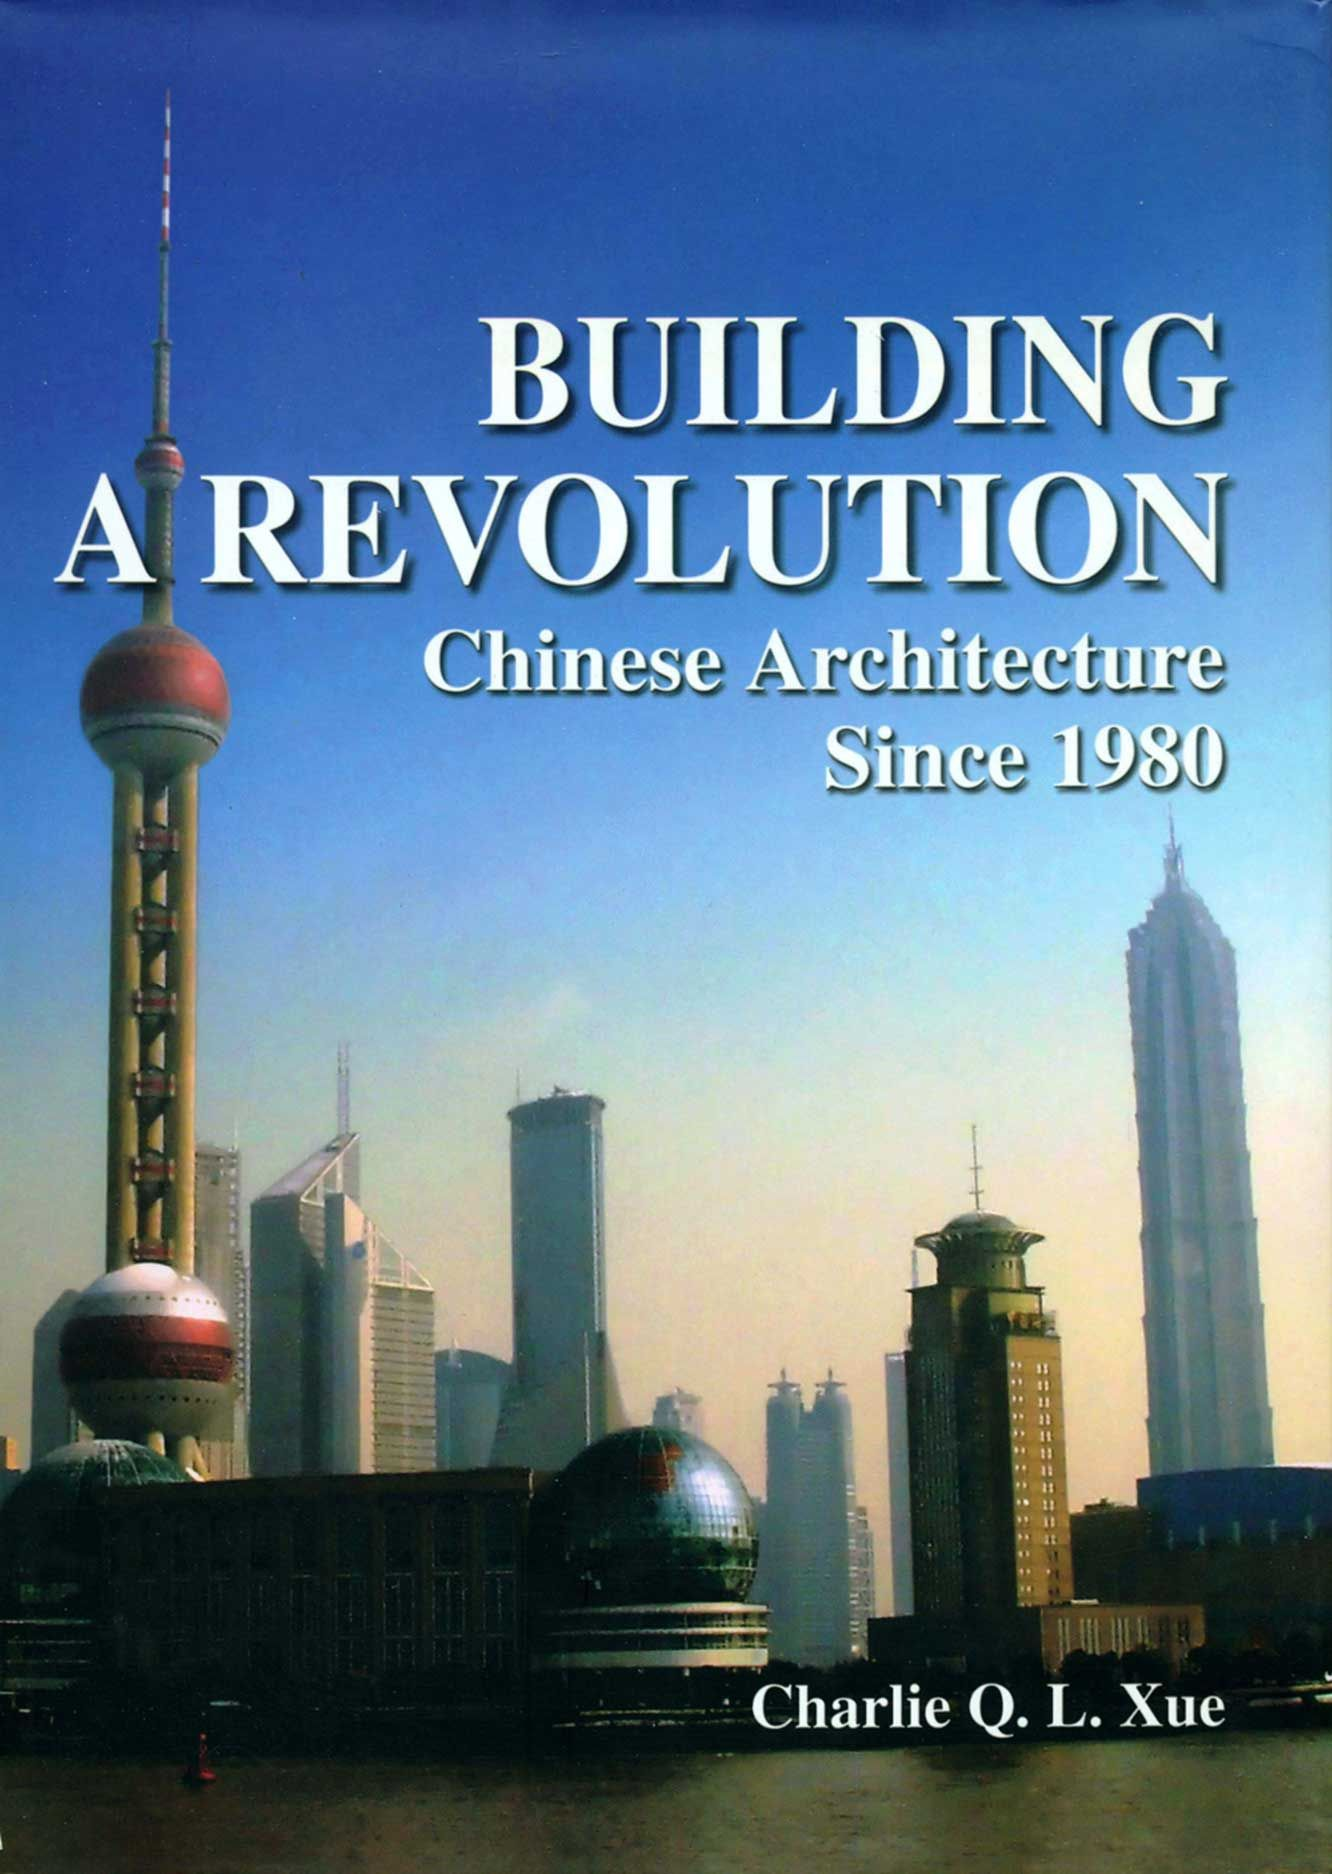 Building a Revolution: Chinese Architecture Since 1980